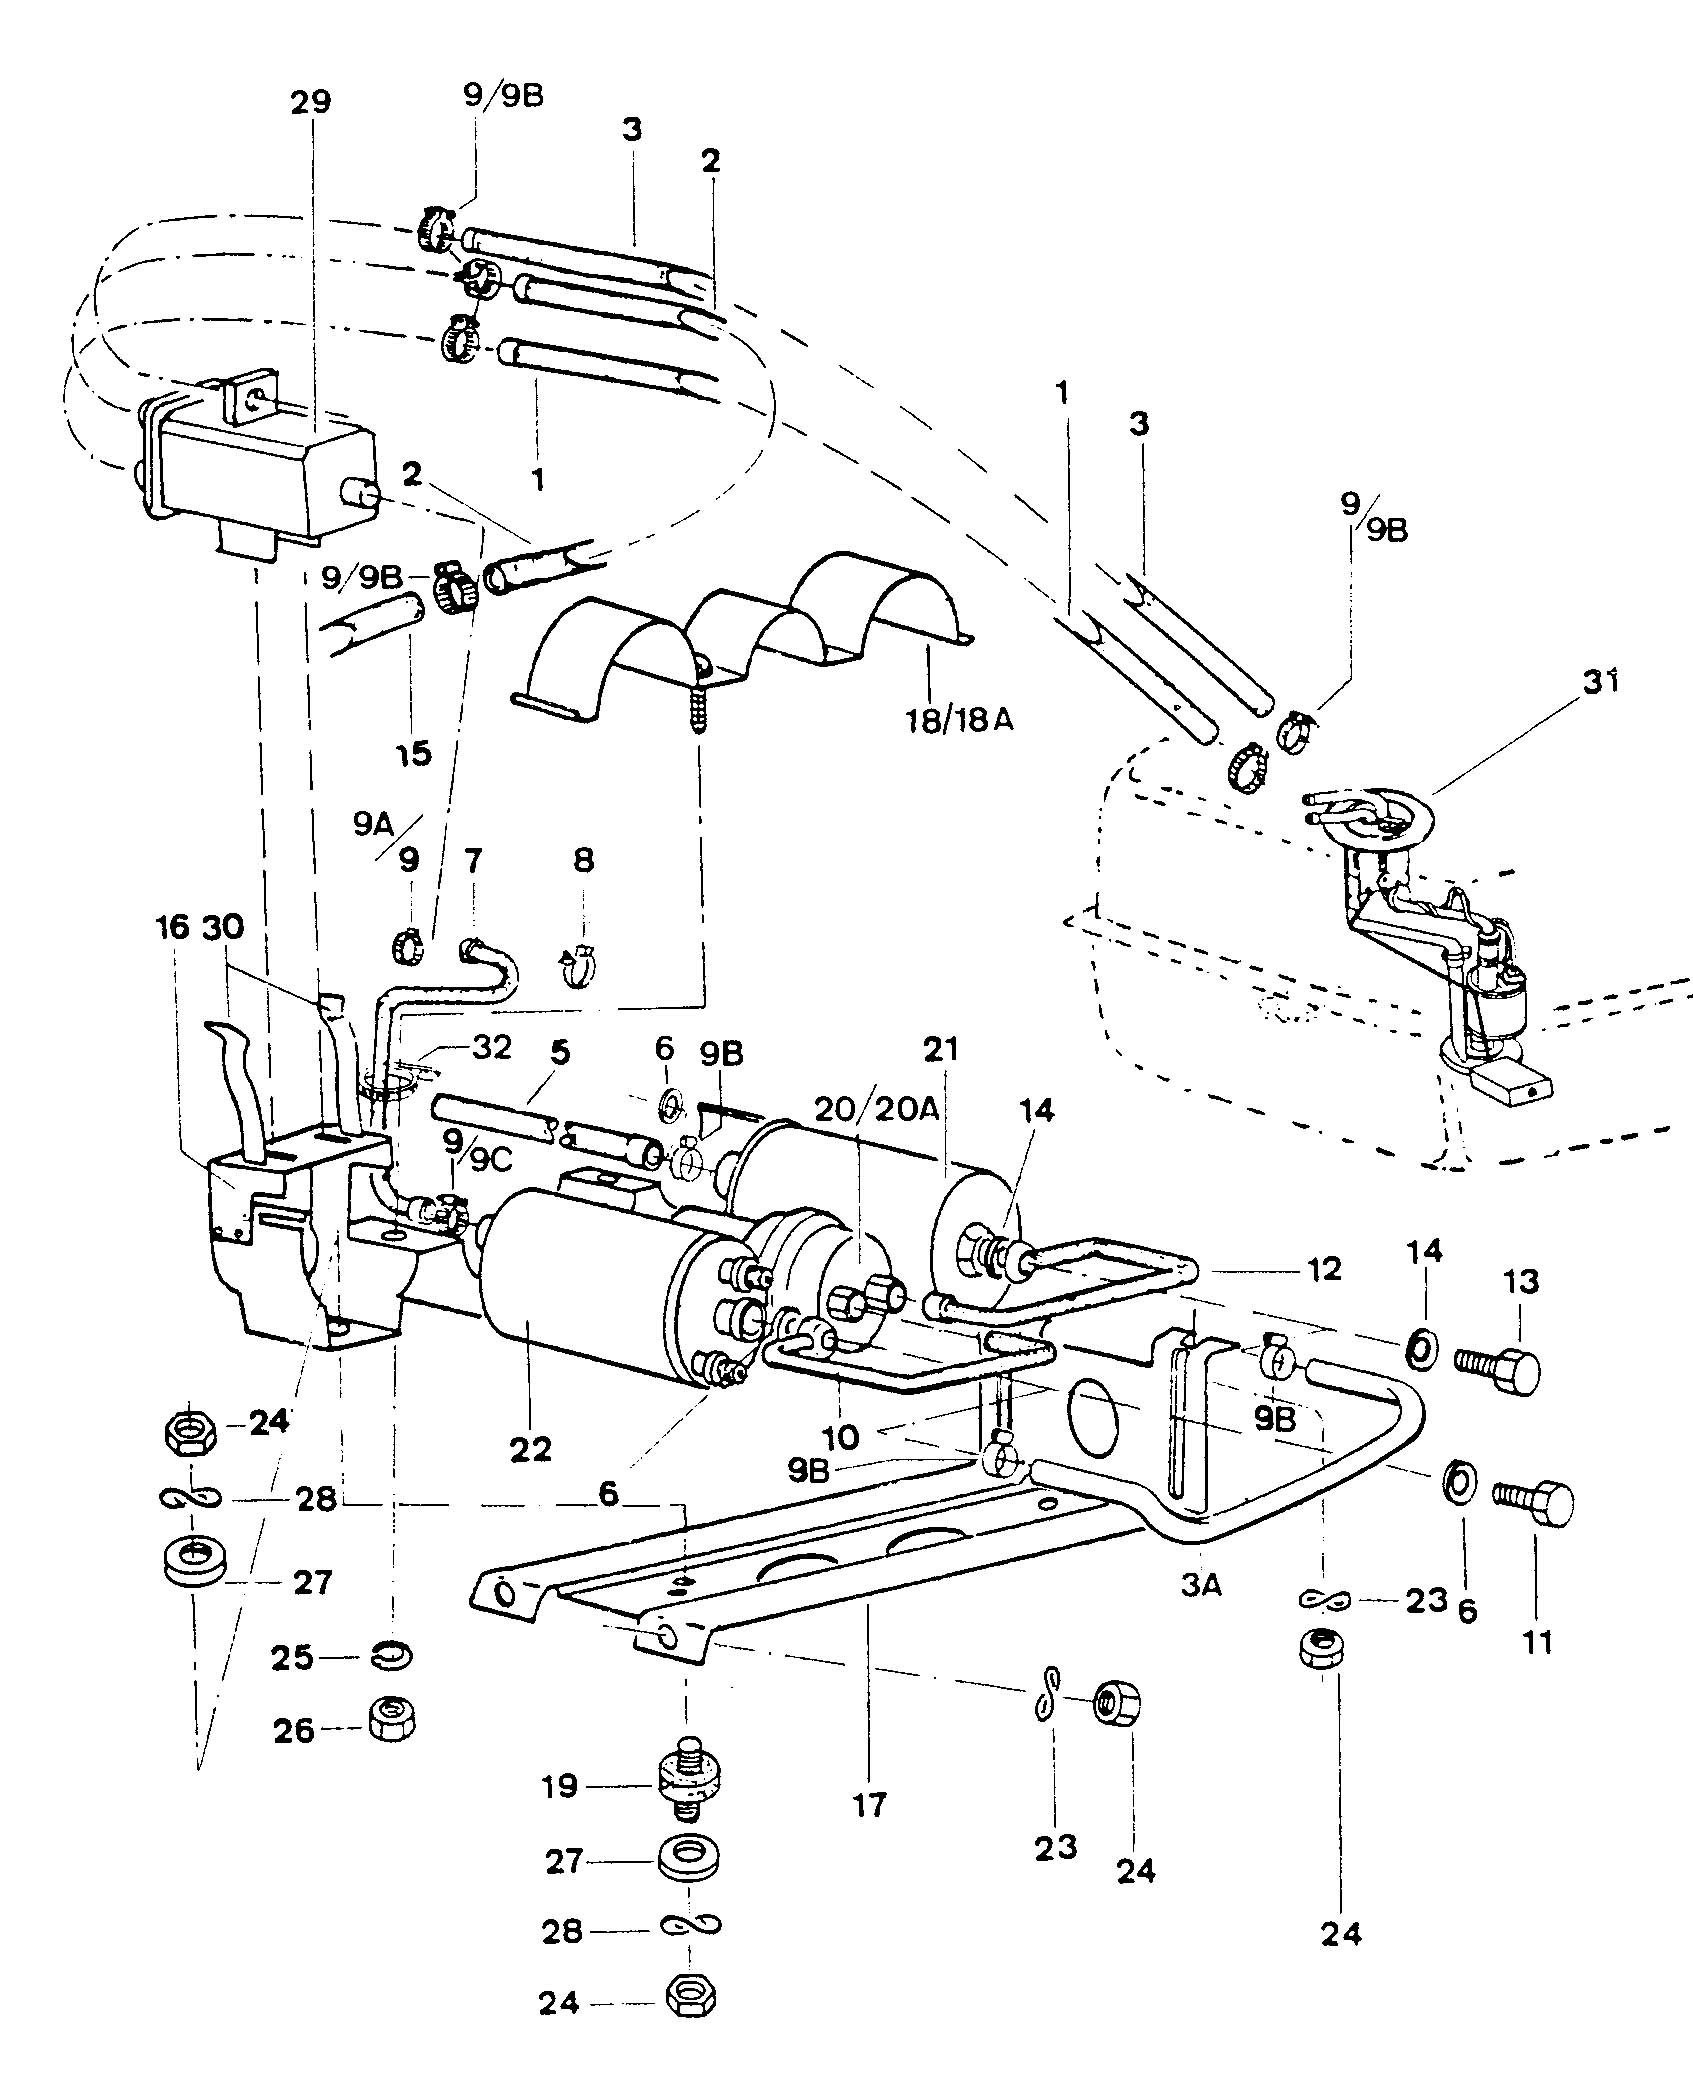 columbia par car electrical diagram columbia image columbia par car 48v wiring diagram wiring diagram and